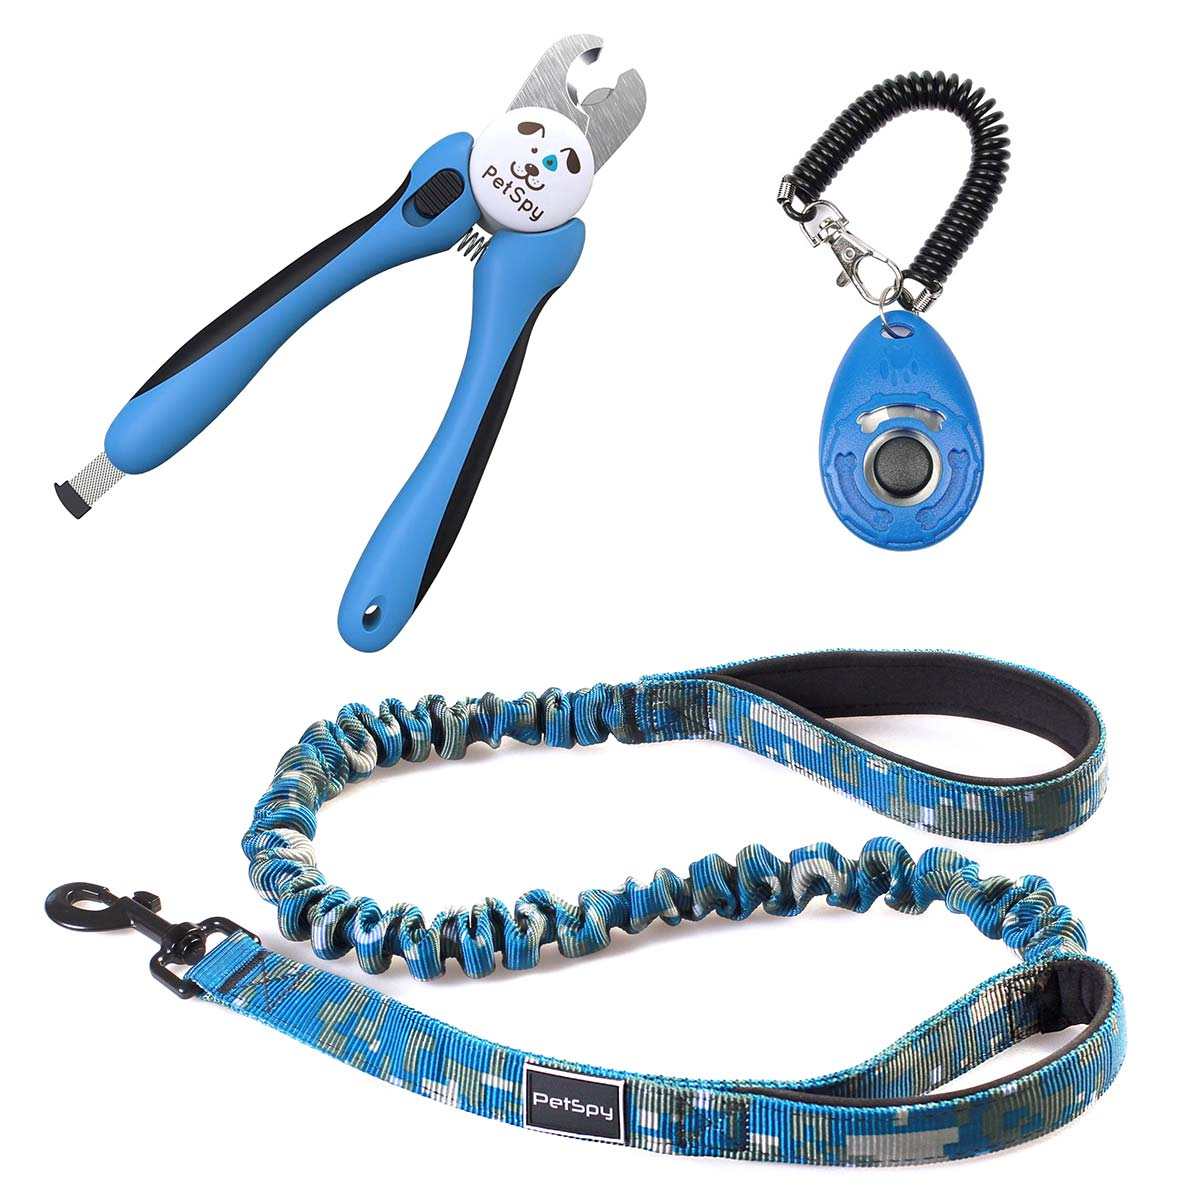 PetSpy Dog Training Bundle - 3 in 1